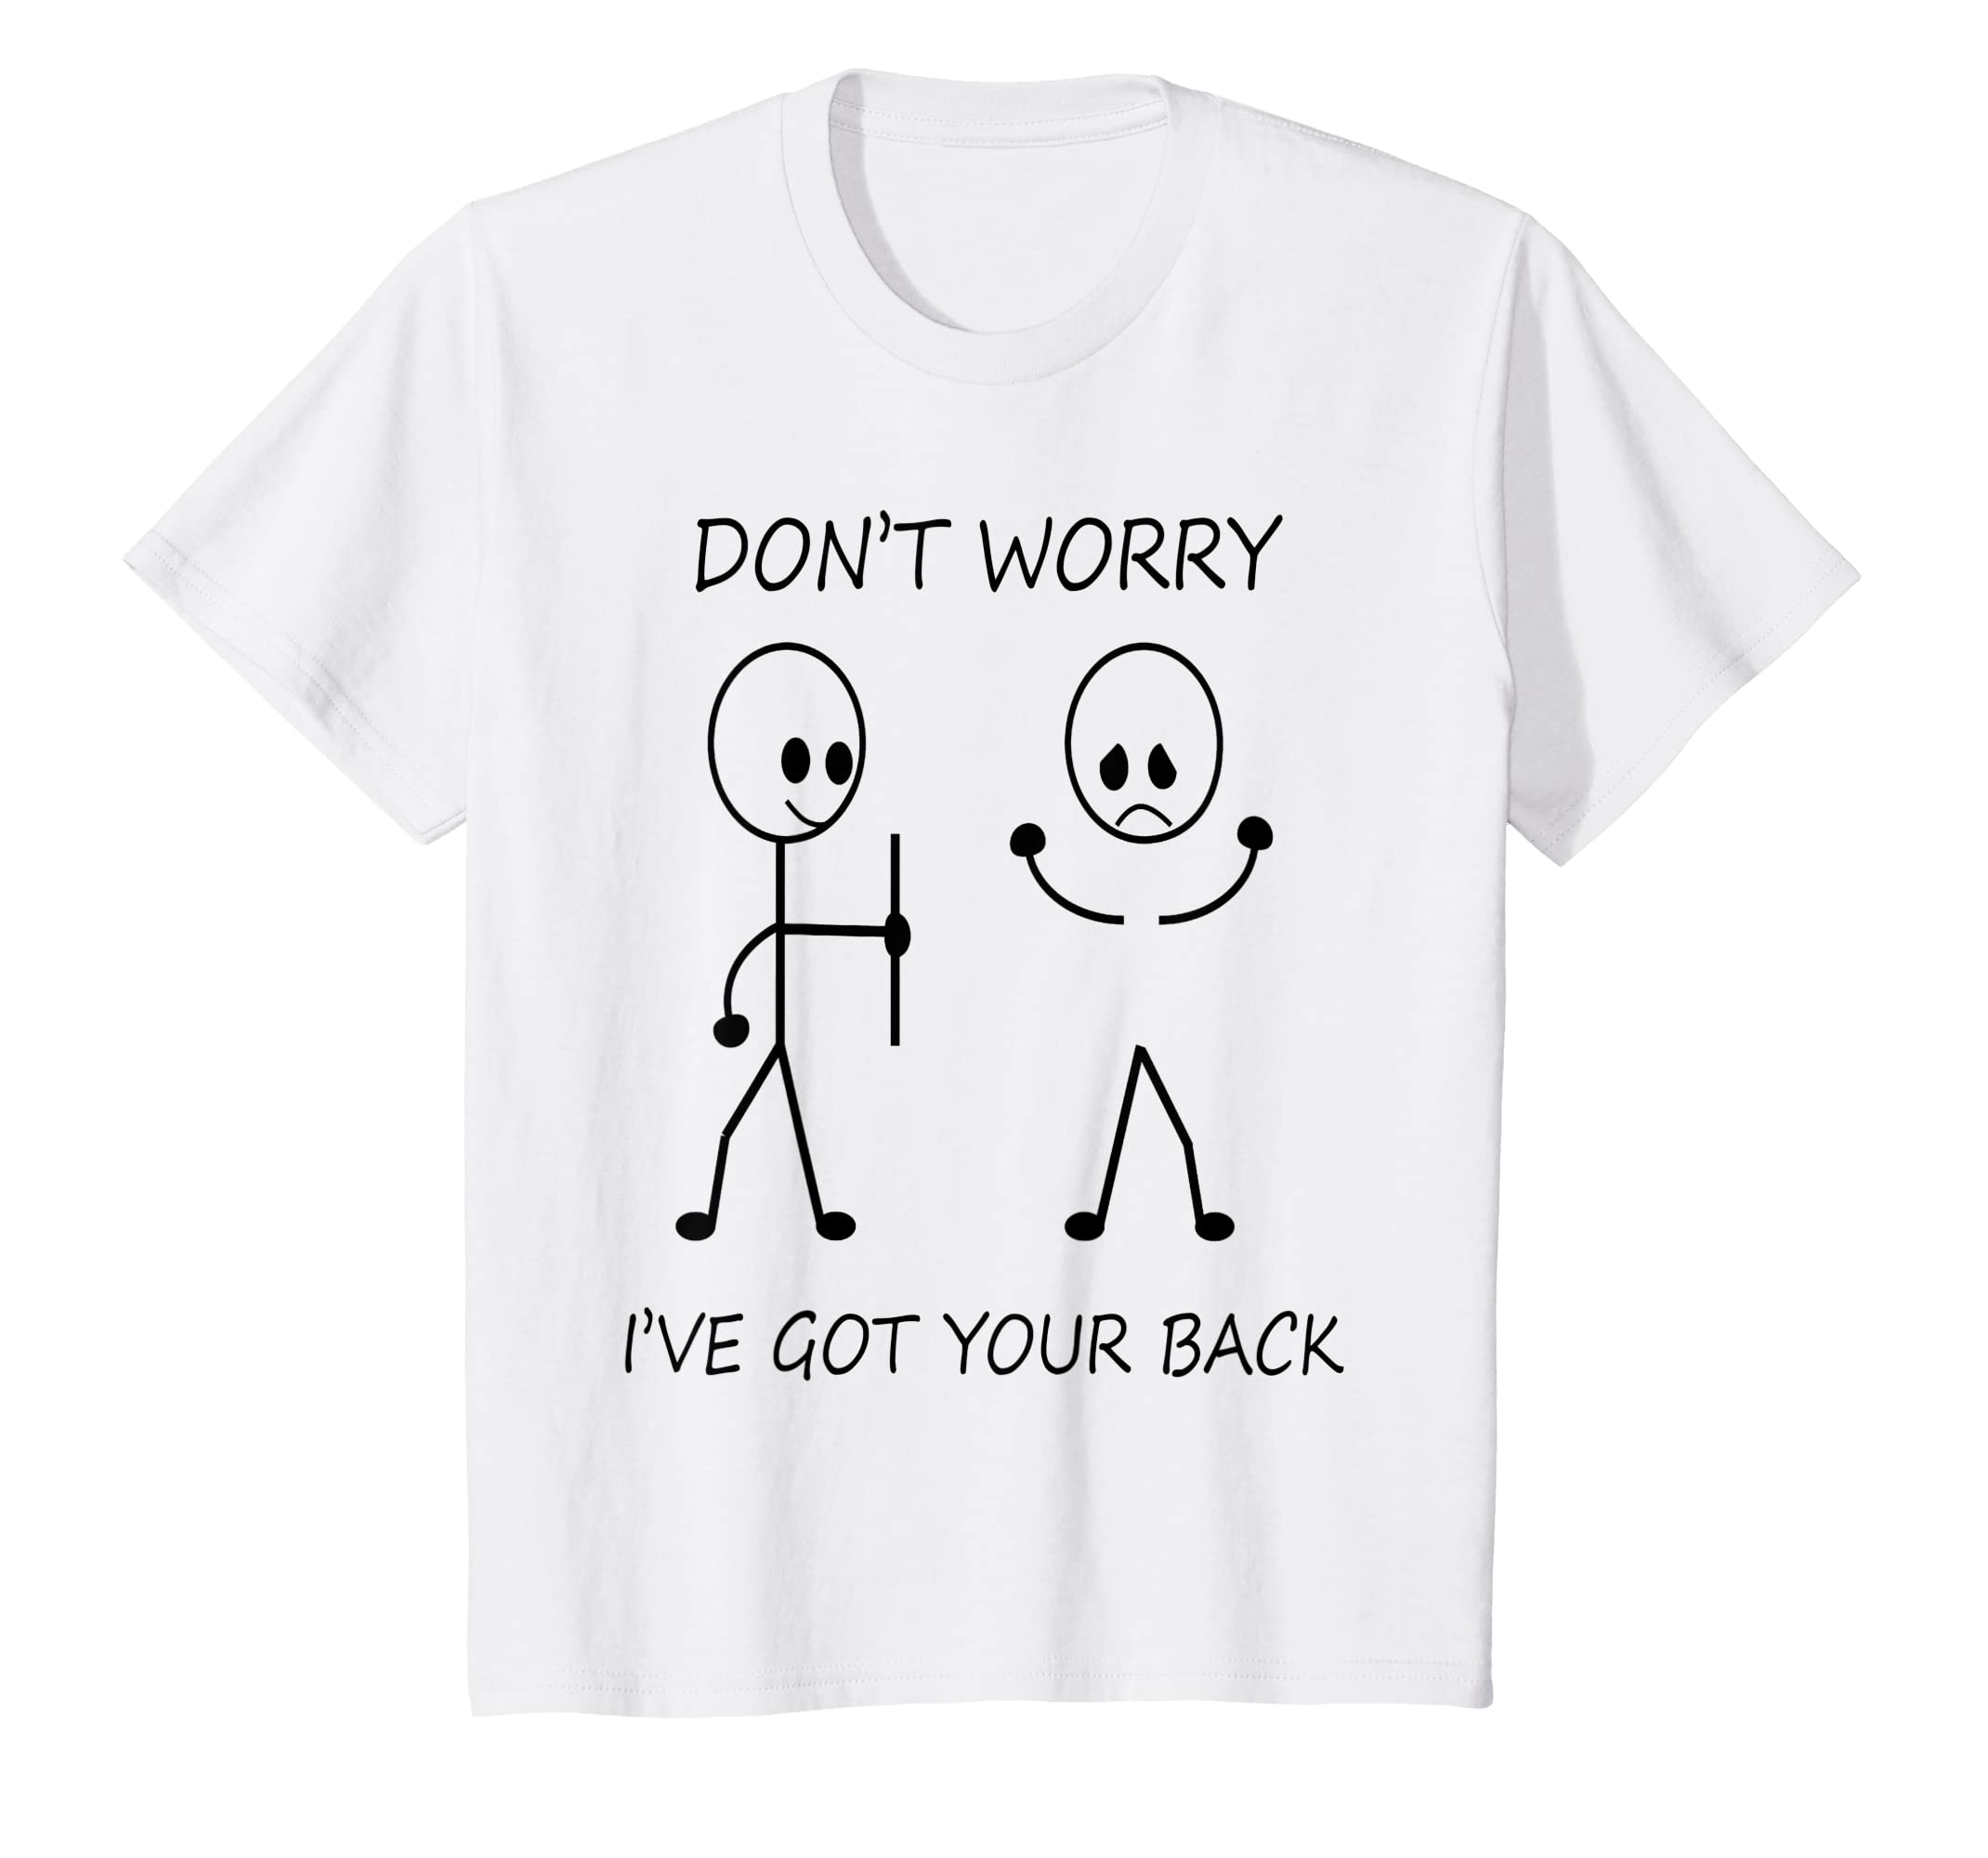 e5c5990a79 Amazon.com: I got your back tshirt for Men and Women funny qoutes.: Clothing